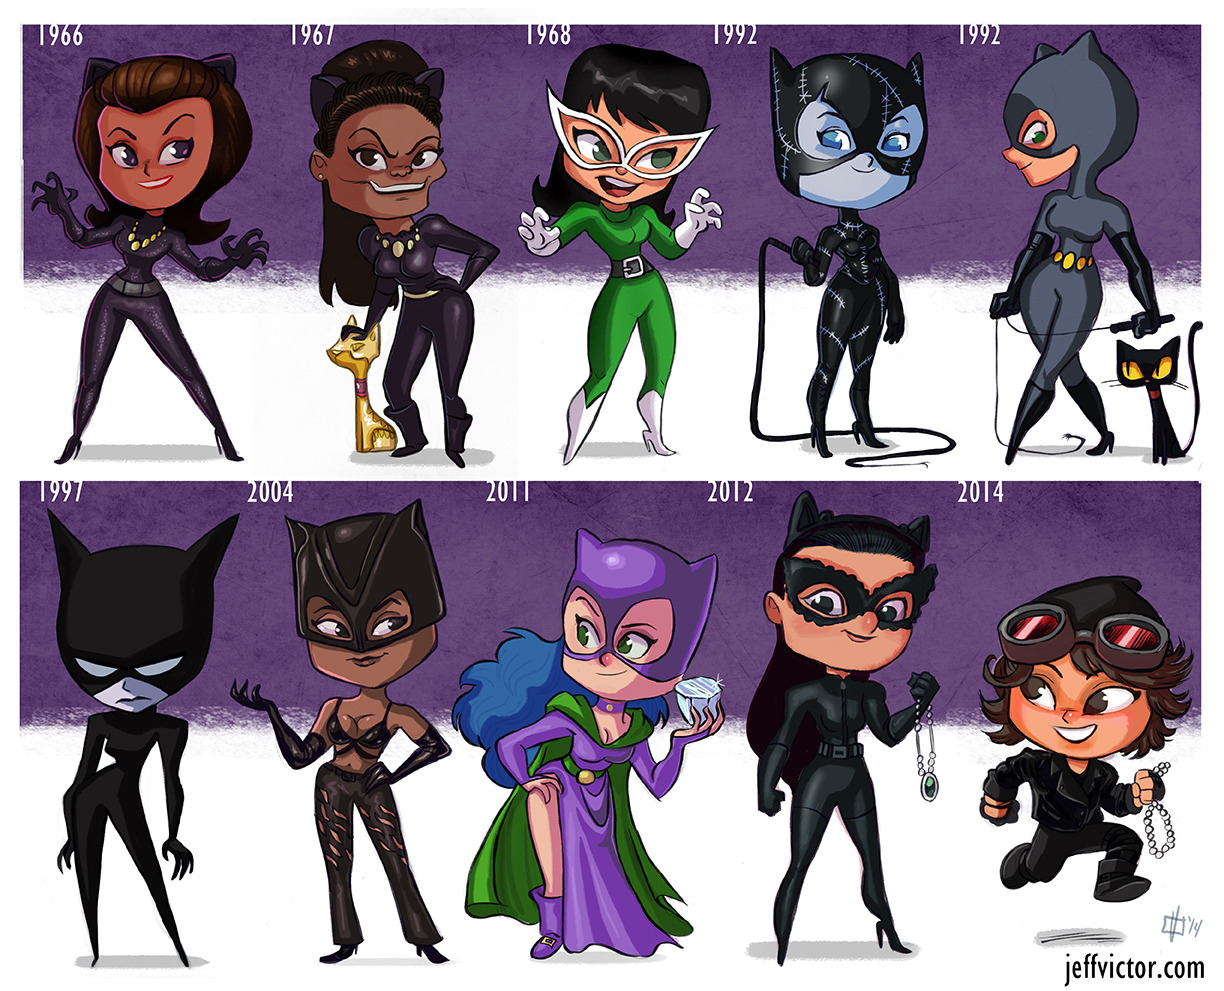 A tribute to one of the greatest comic characters of all time: Catwoman! I can't decide who I like better- Michelle Pfeiffer or Julie Newmar. Which Catwoman is your favorite?